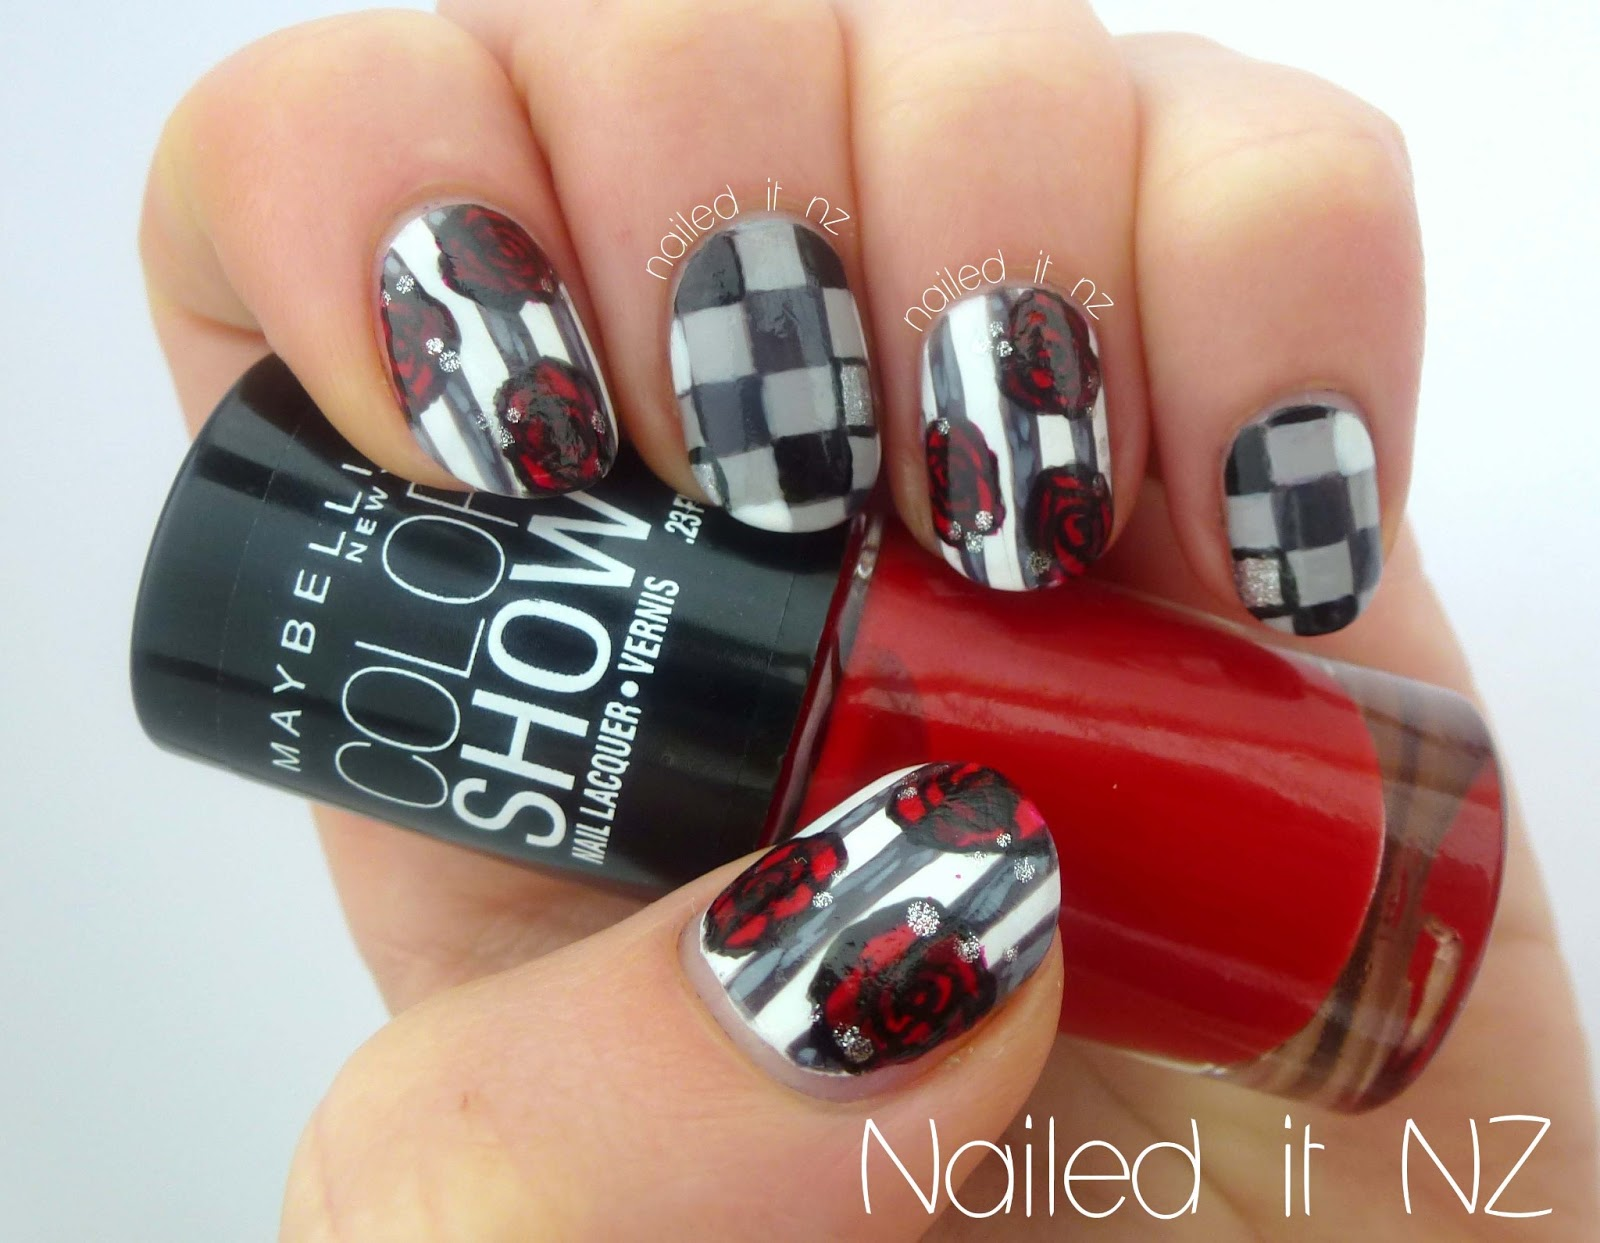 Discussion on this topic: 12 Modern Checkered Nail Art Designs, 12-modern-checkered-nail-art-designs/